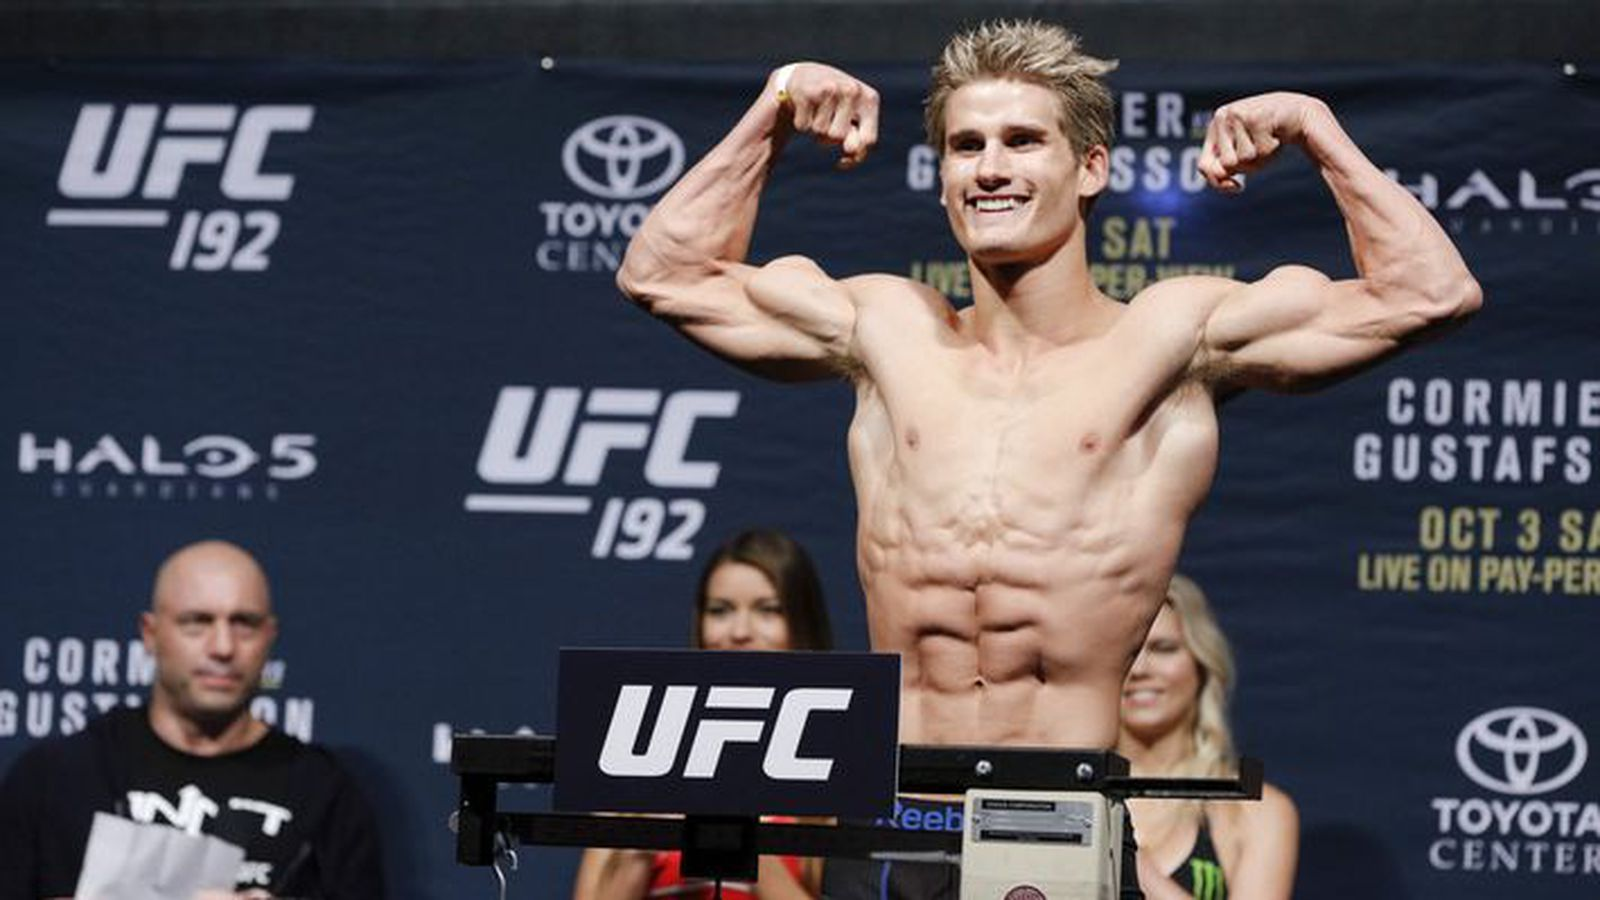 Sage Northcutt aims to be ONE Championship's first-ever triple champion